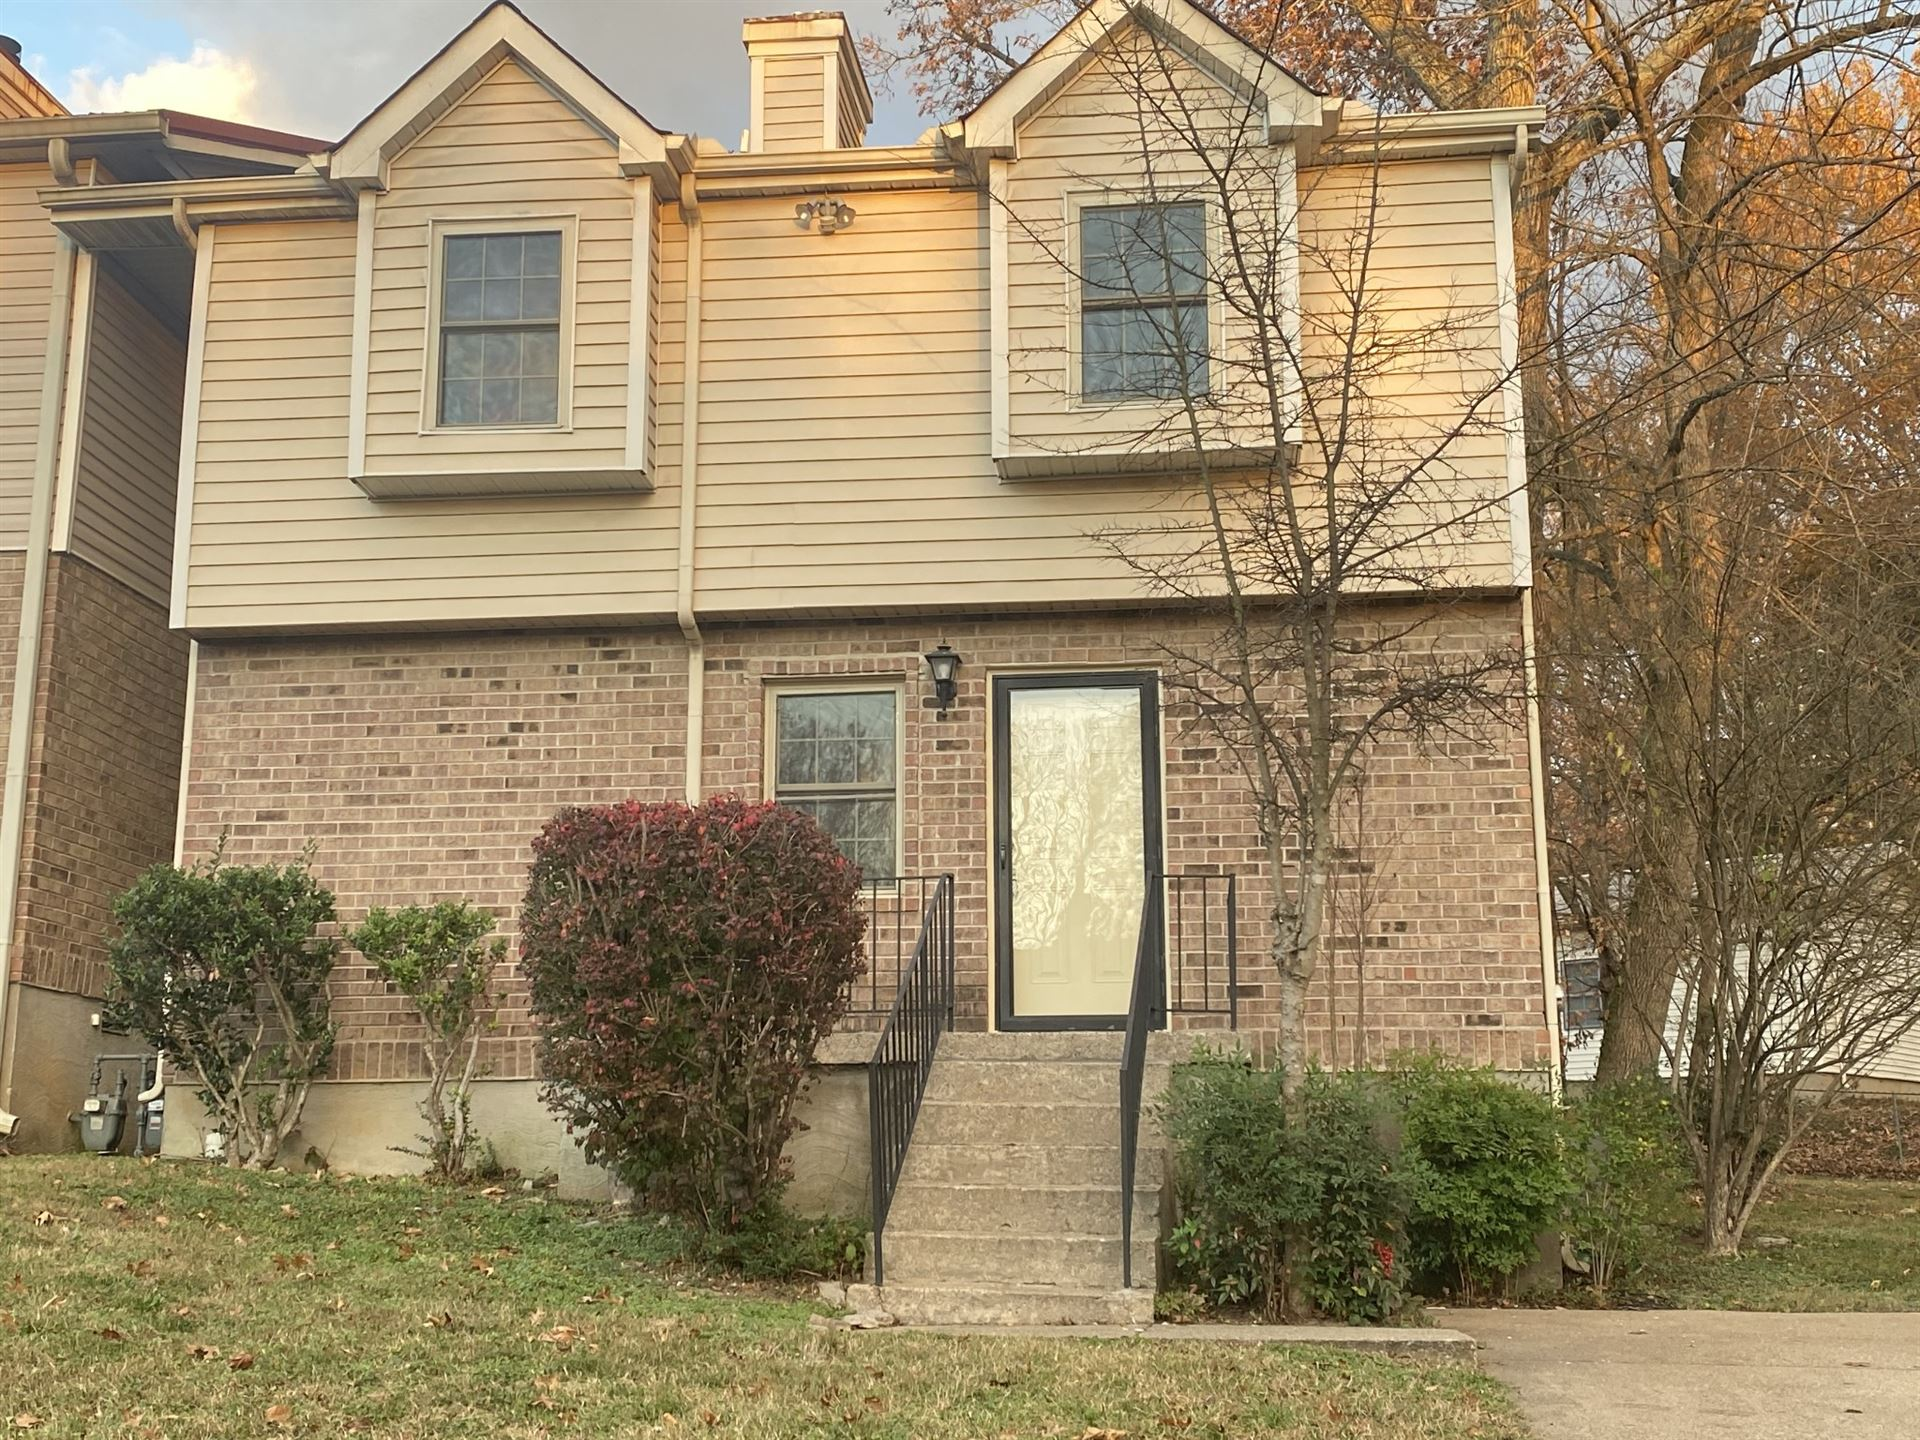 5203 Dove Trl, Hermitage, TN 37076 - MLS#: 2209181